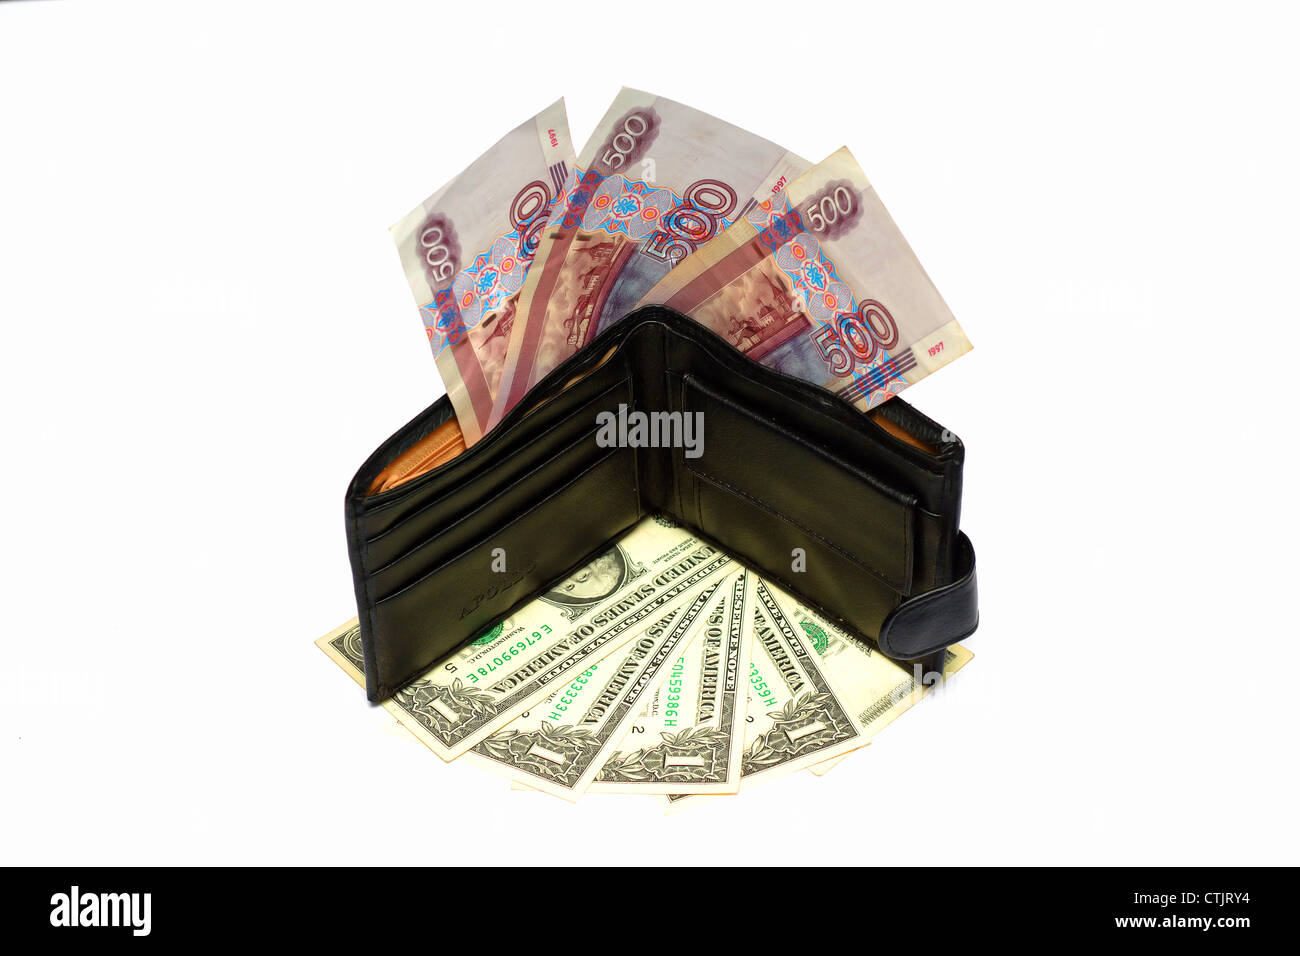 Inflation and world crisis influence parities between currencies - Stock Image